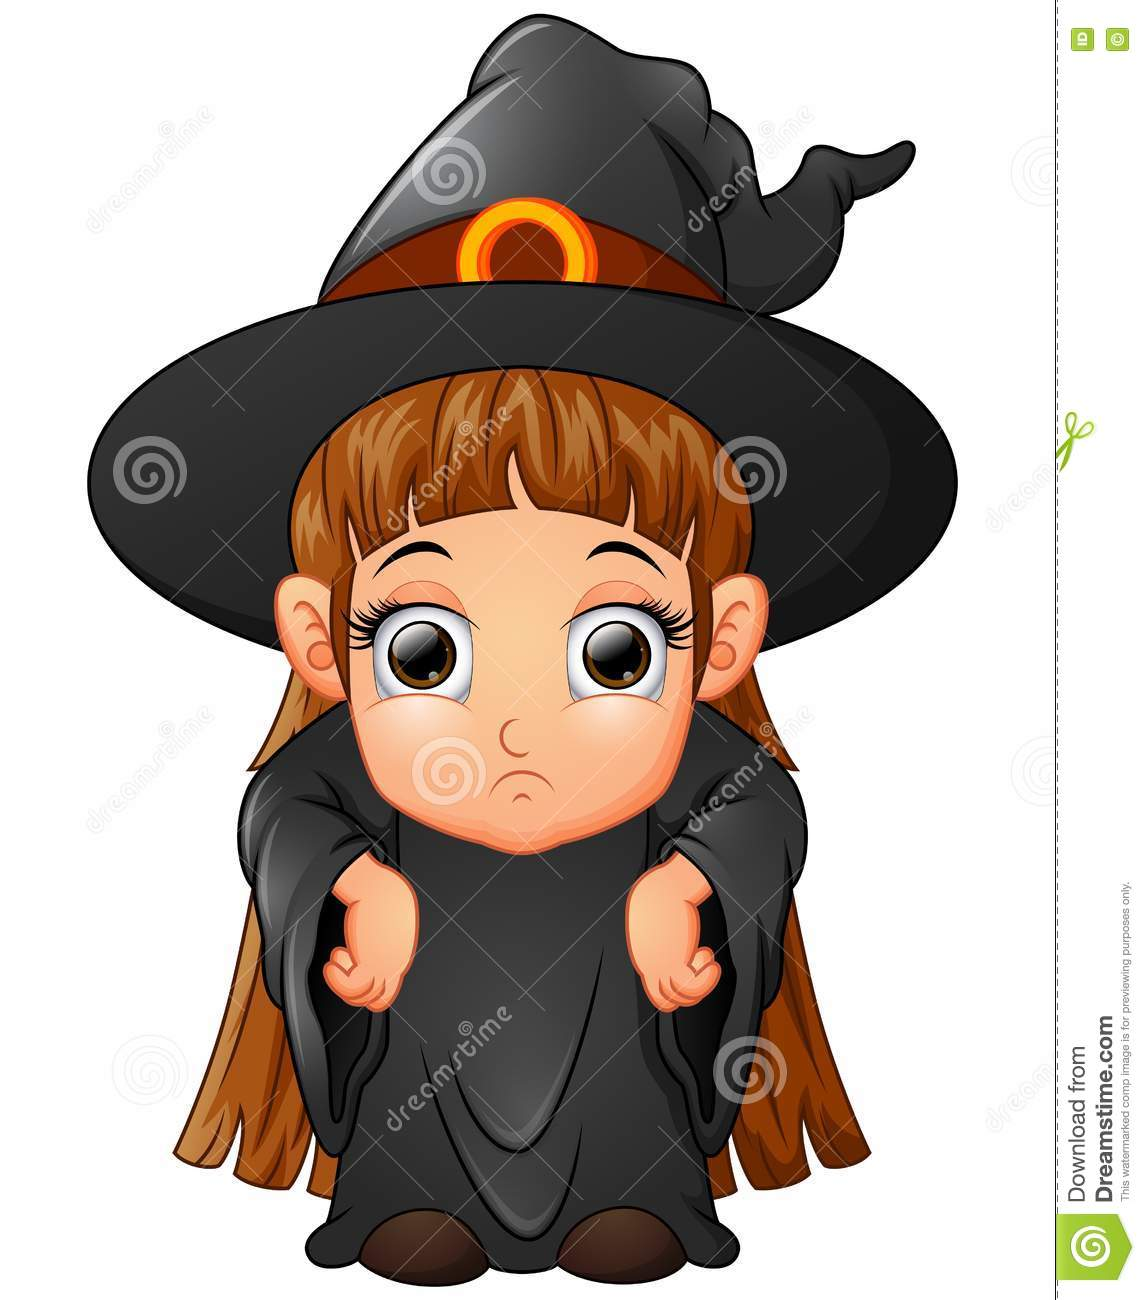 Little girl cartoon wearing witch costume  sc 1 st  Dreamstime.com & Little Girl Cartoon Wearing Witch Costume Stock Vector ...